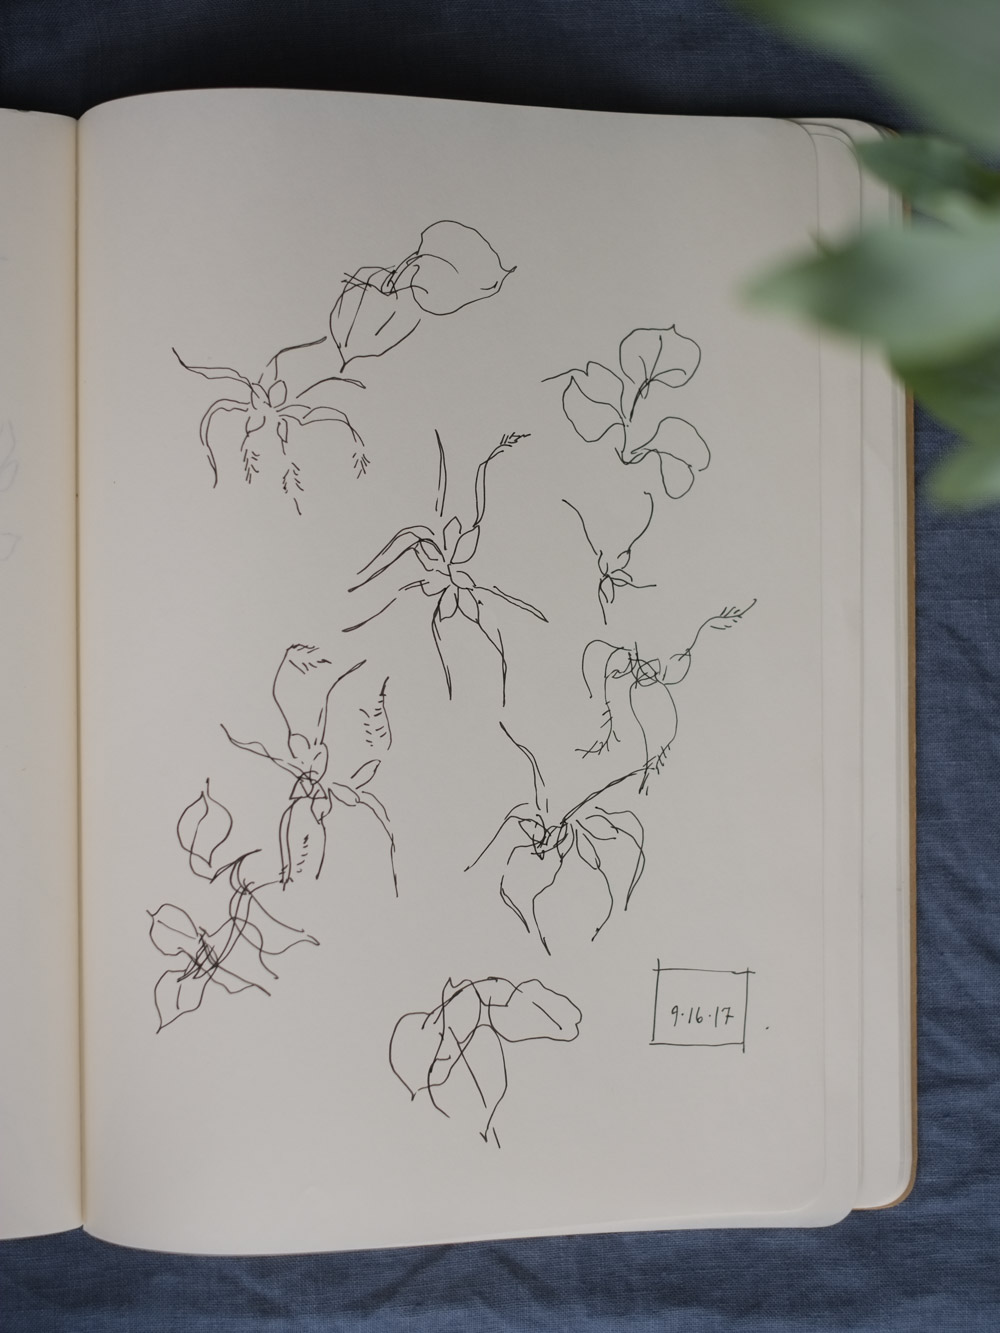 Erin_Ellis_daily_botanical_blind_drawings_sept_2017.jpg-20.jpg